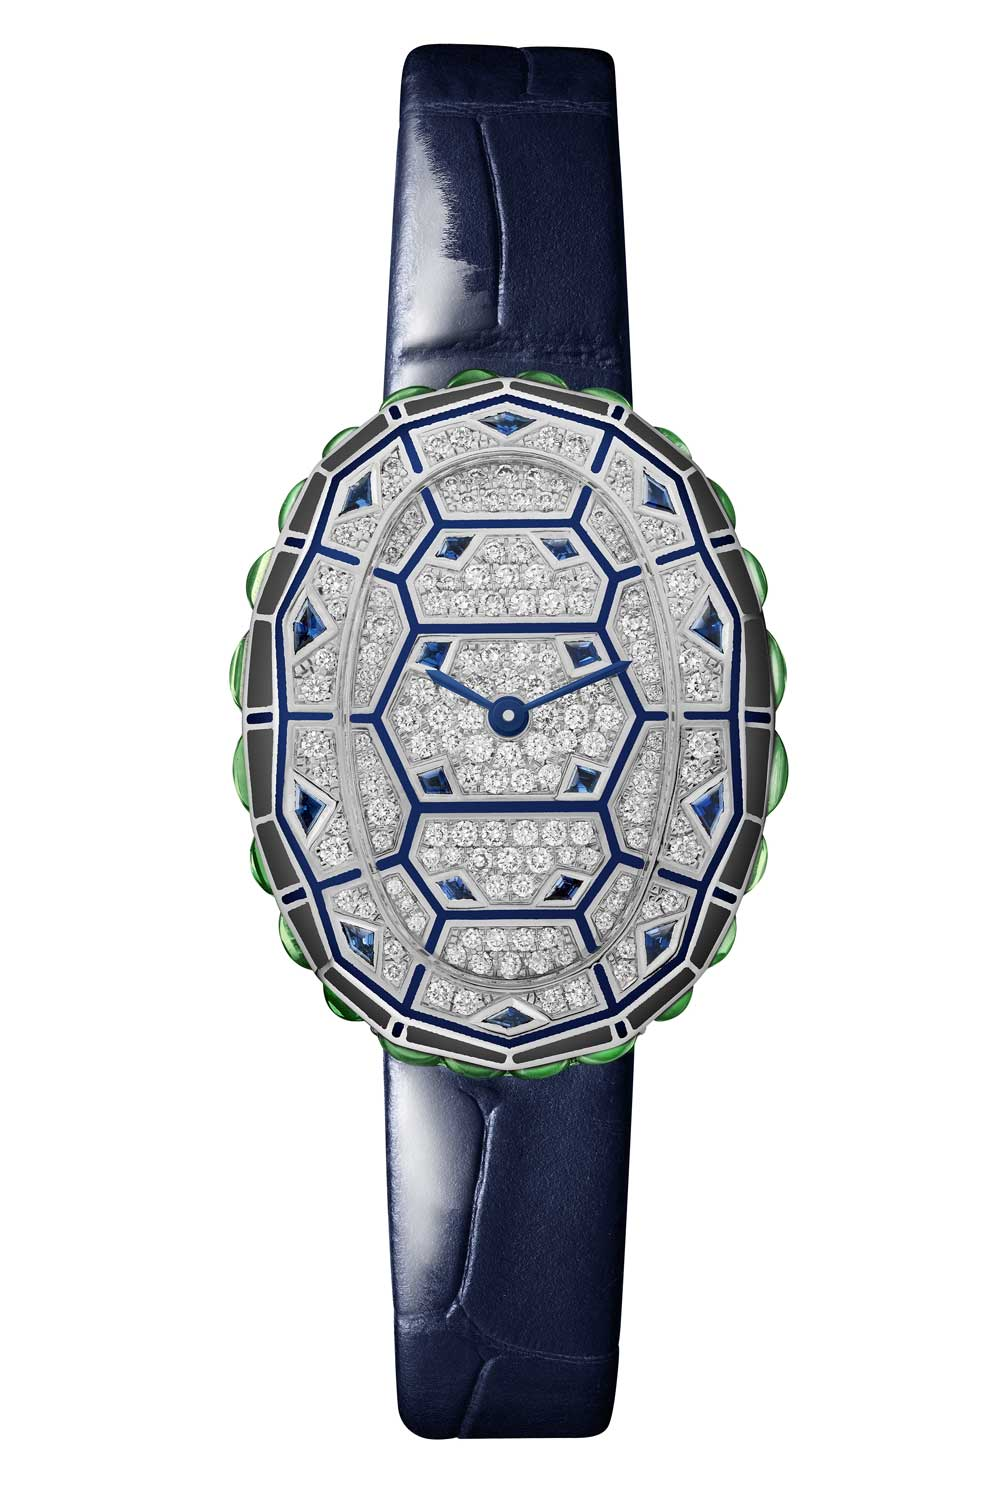 A limited edition of 50 individually numbered watches, the new Baignoire has a tortoise-inspired decor. The watch uses a geometric scale motif composed of black and anthracite lines, diamond paving and buff-top tsavorites and sapphires